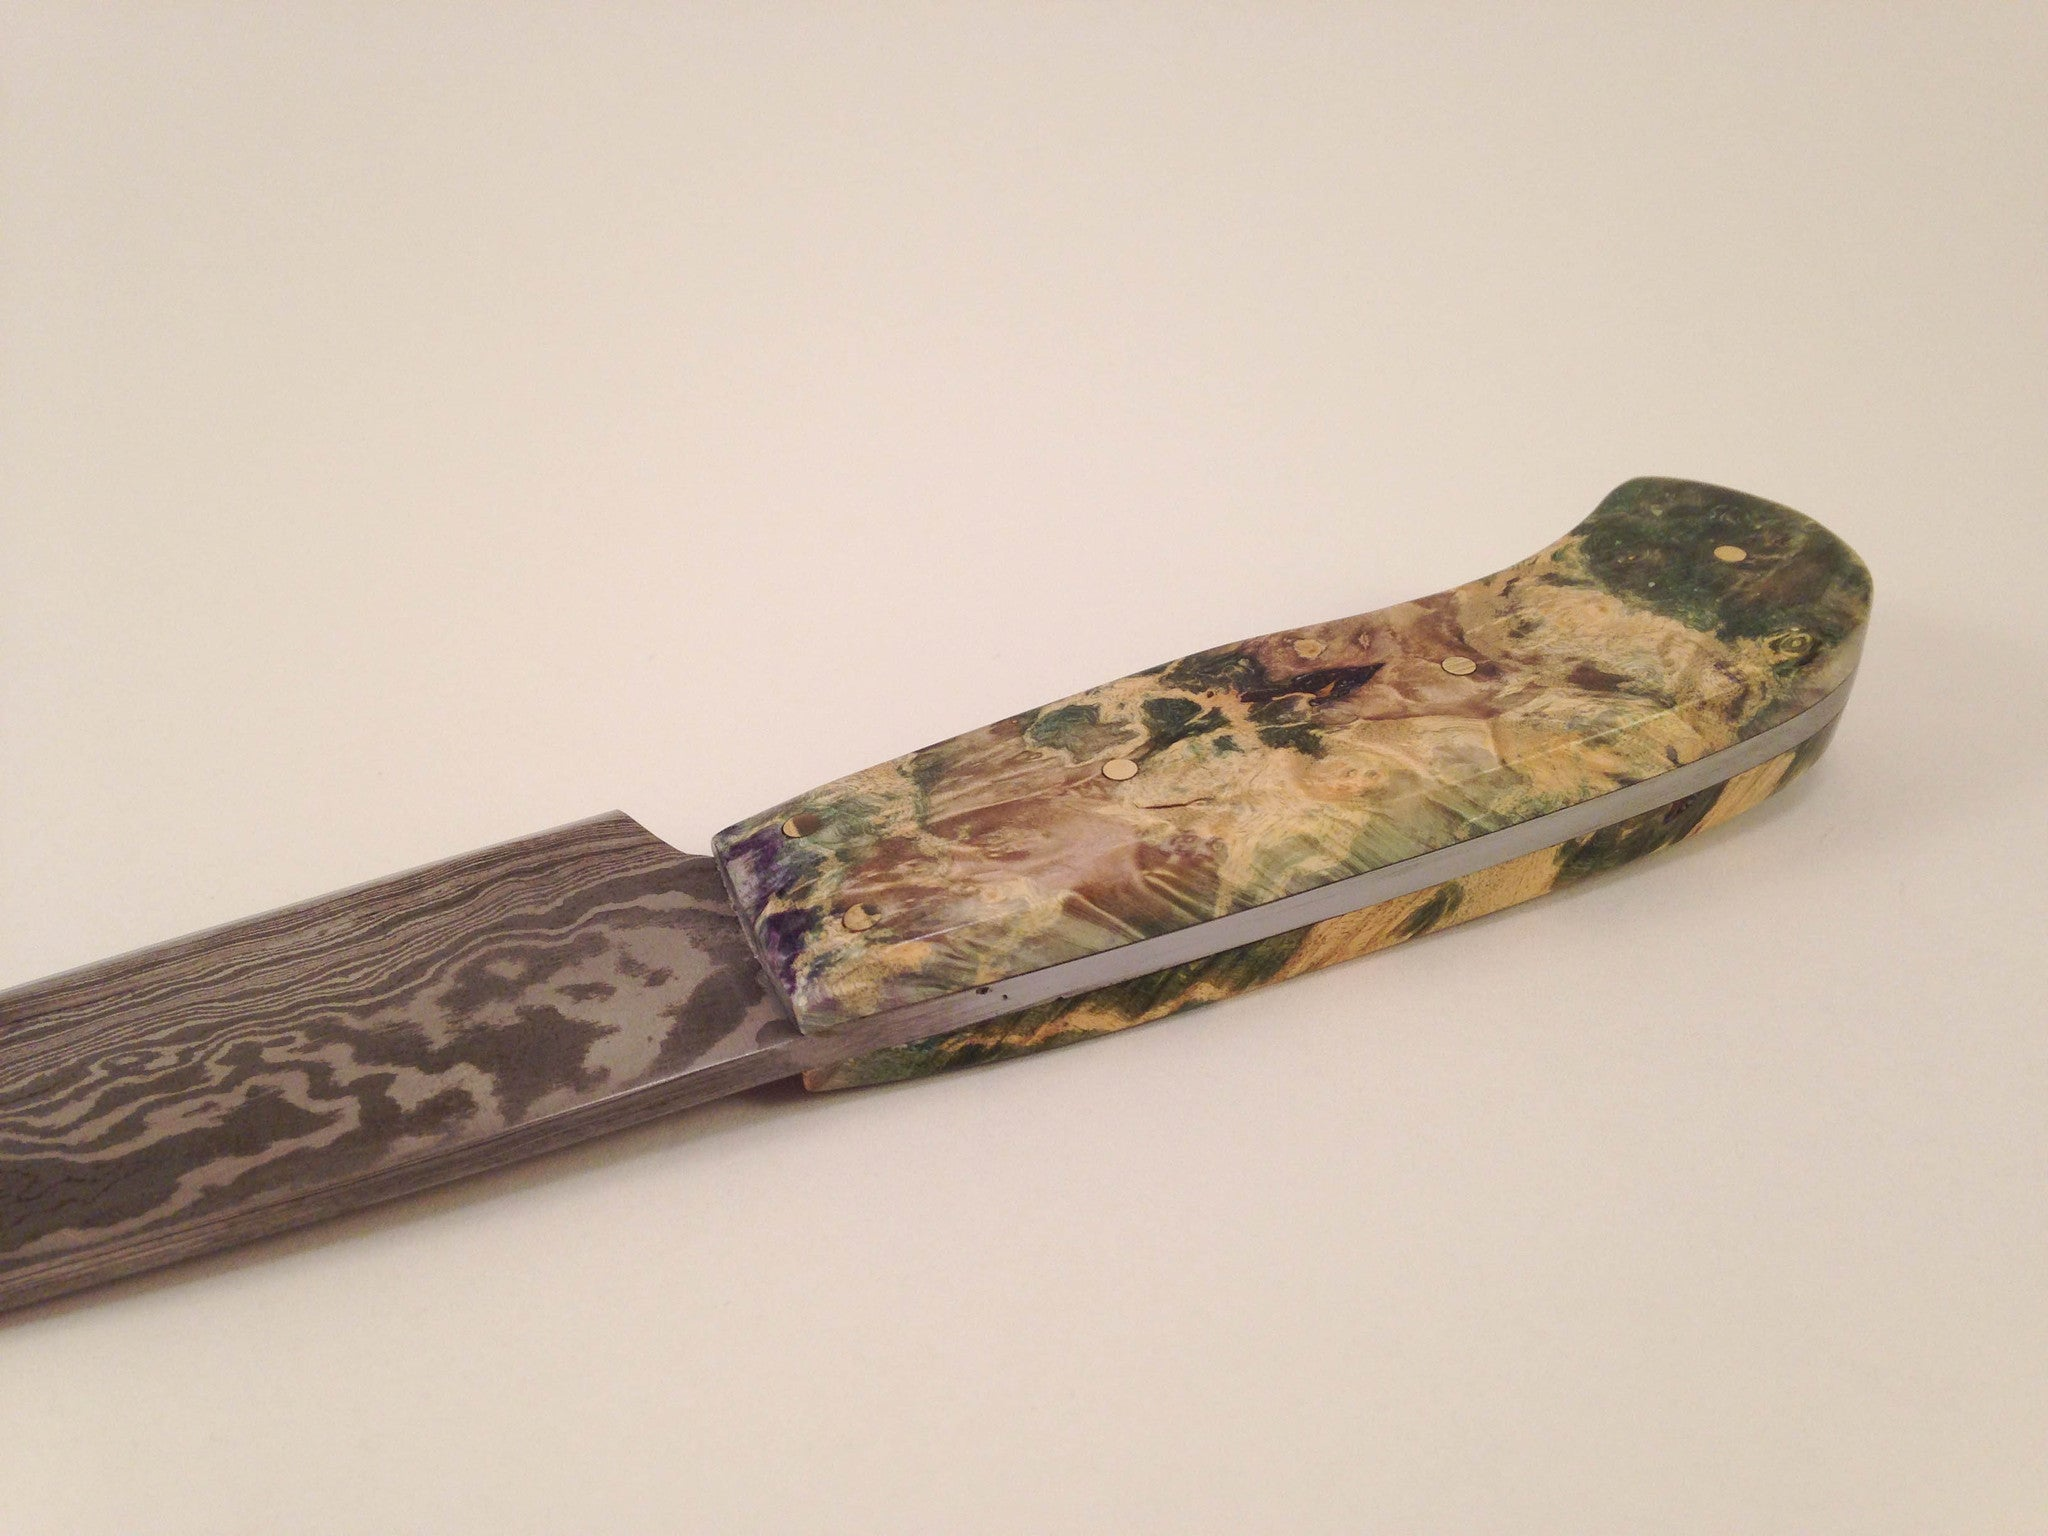 Knife (Multi-colored Box Elder Burl) - No One Alike